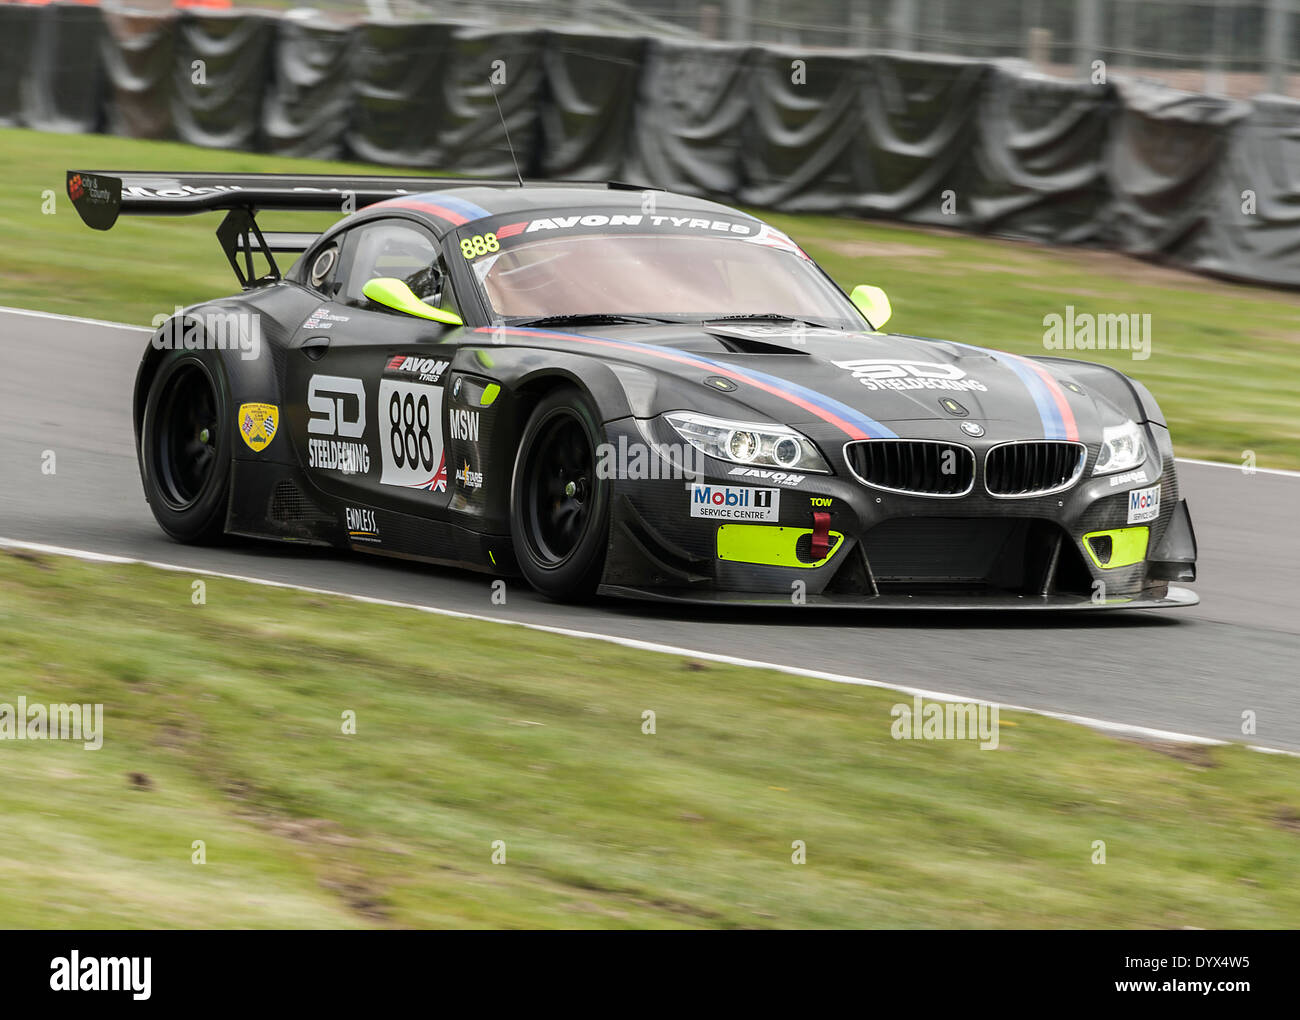 bmw z4 gt3 sports car in the british gt championship at oulton park stock photo royalty free. Black Bedroom Furniture Sets. Home Design Ideas